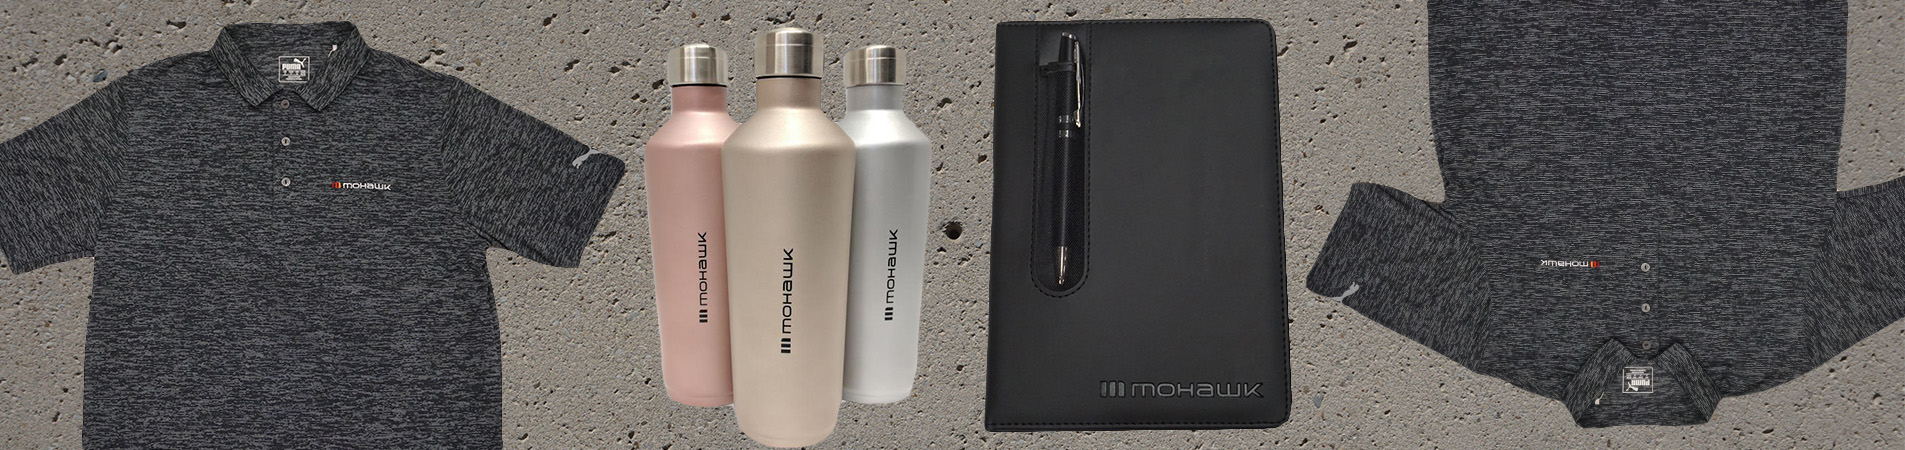 Examples of Mohawk branded products